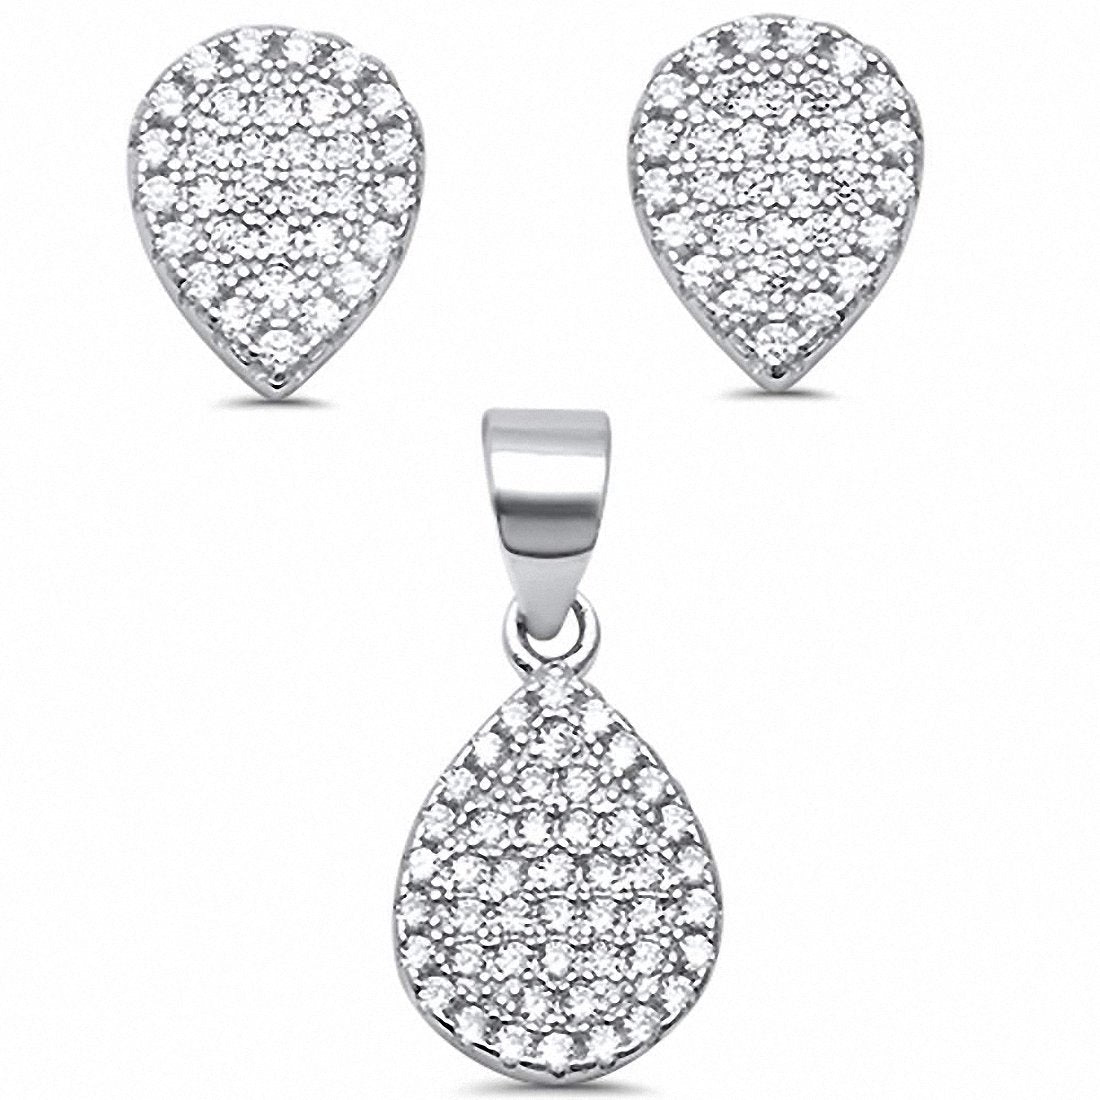 Micro Pave Teardrop Jewelry Set Round Cubic Zirconia 925 Sterling Silver Pear Shape Choose Color